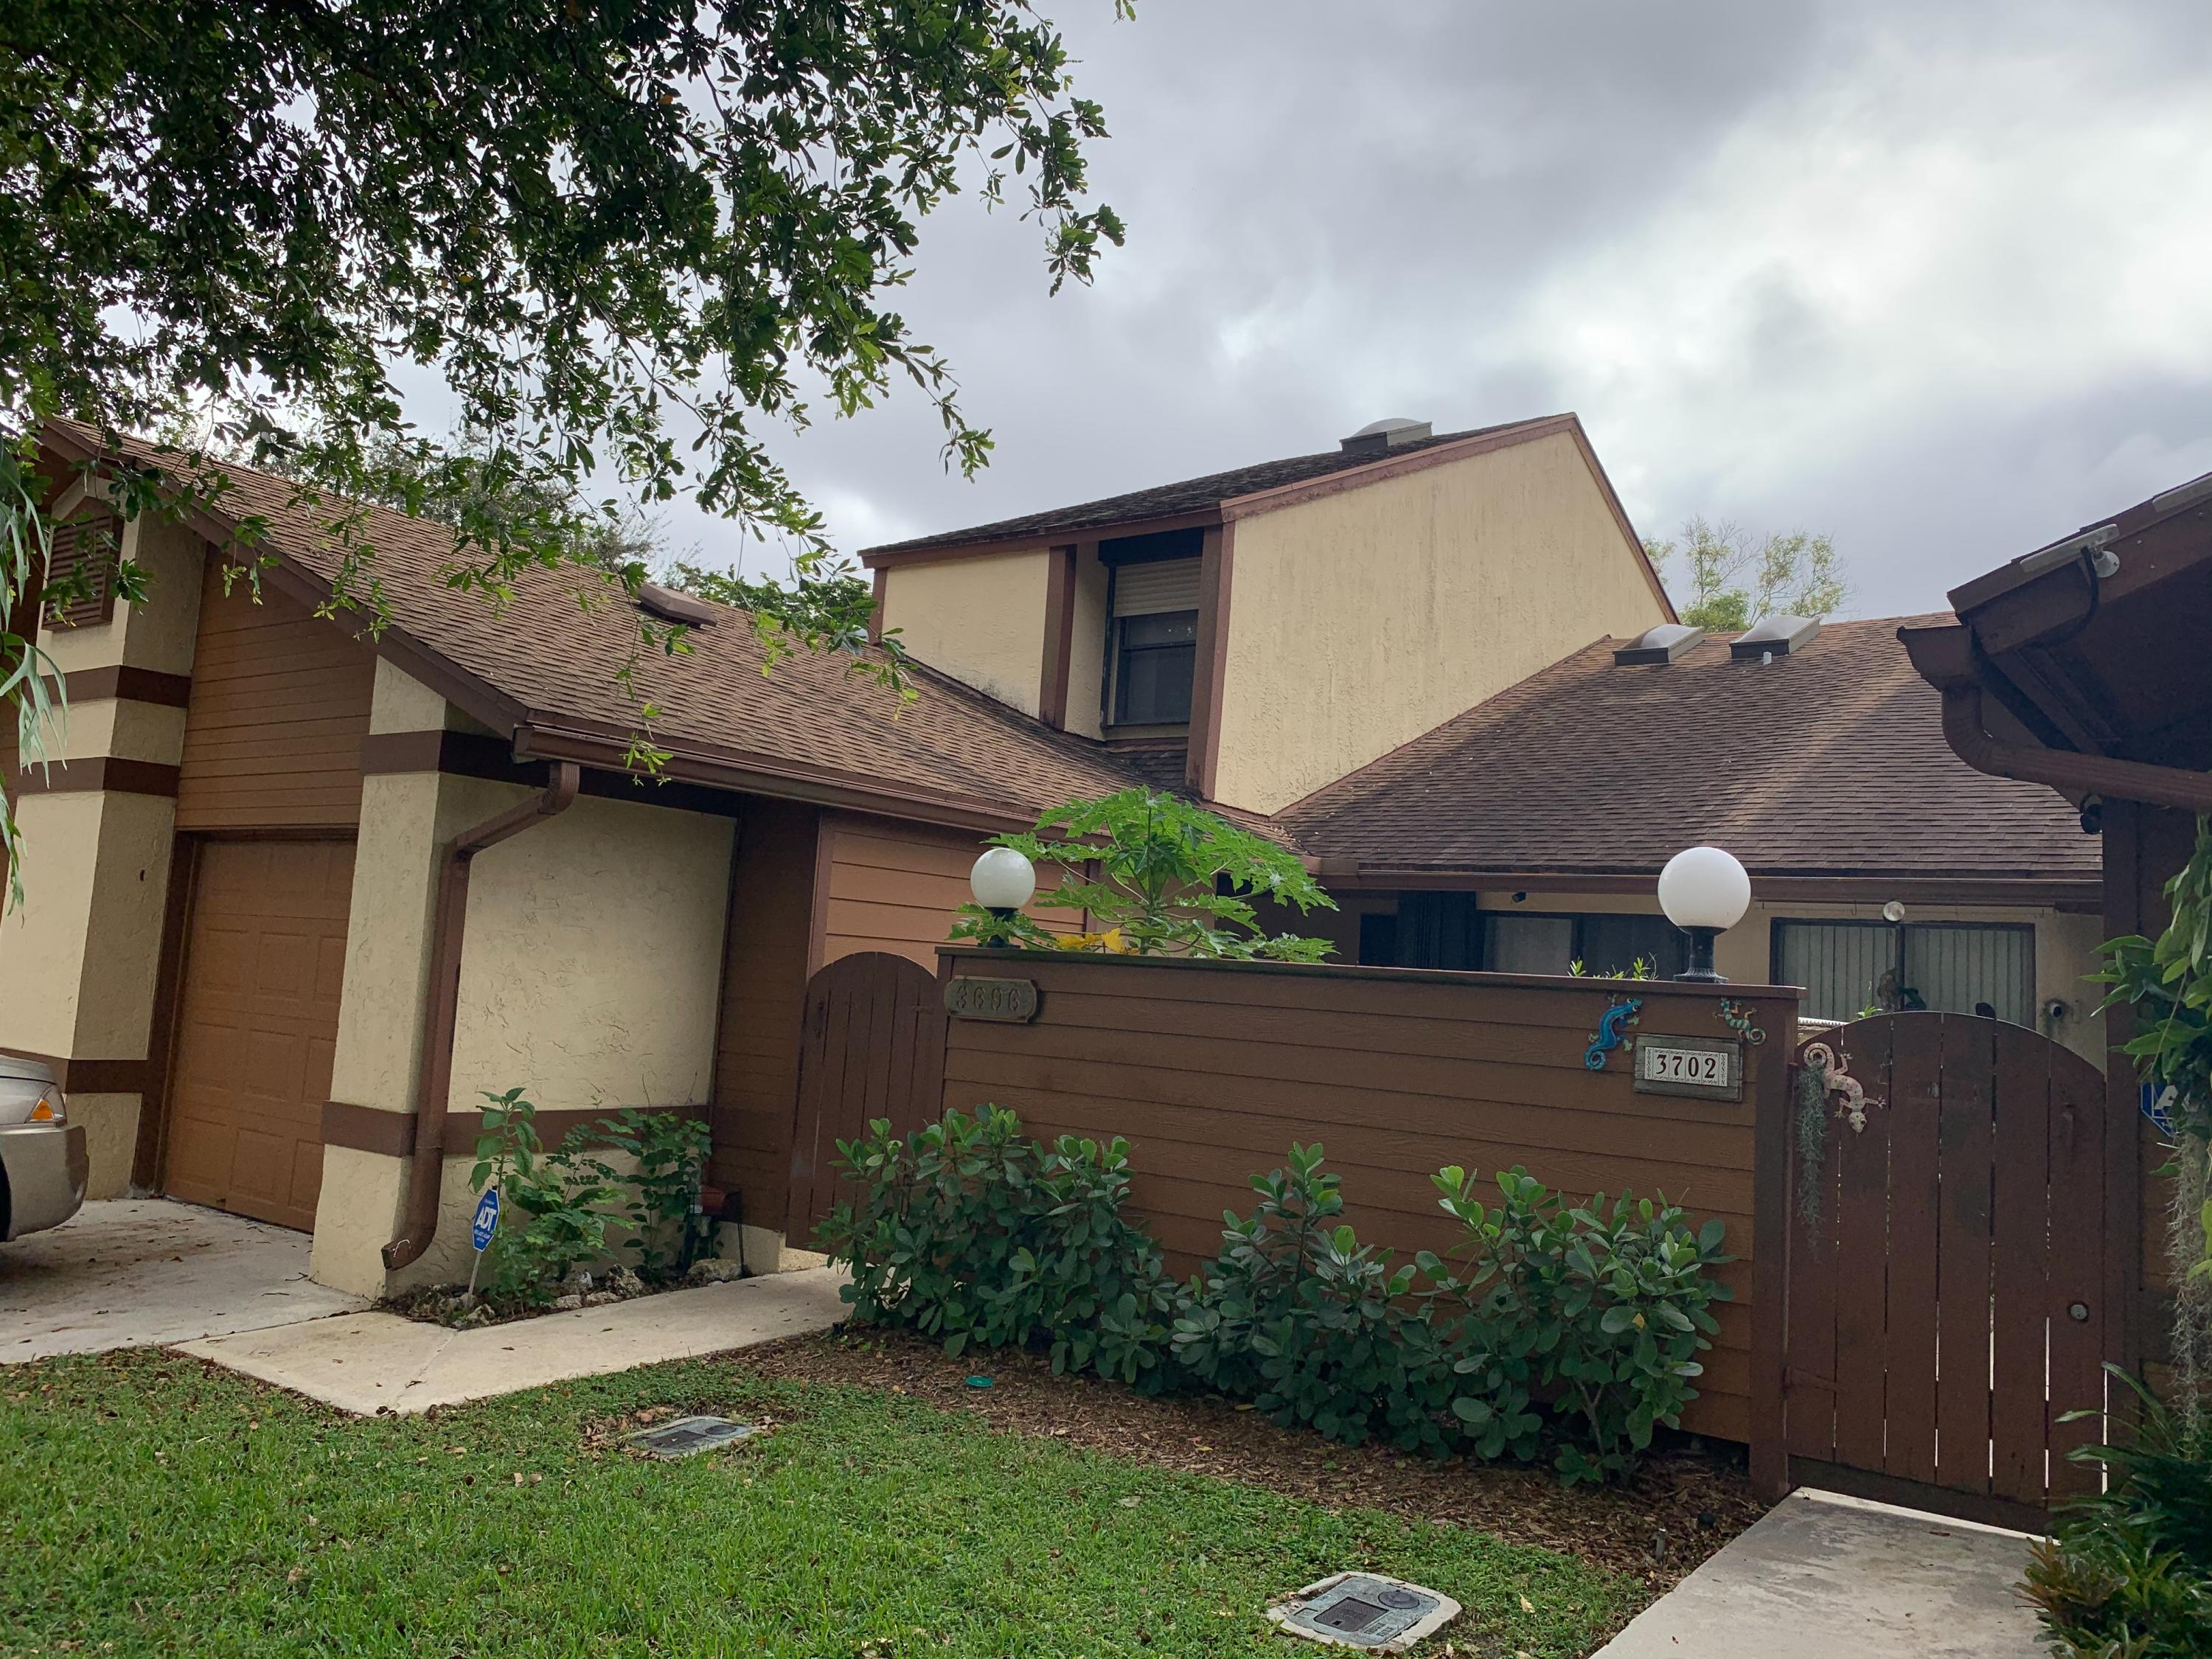 3696 S Timberline Drive  For Sale 10673534, FL